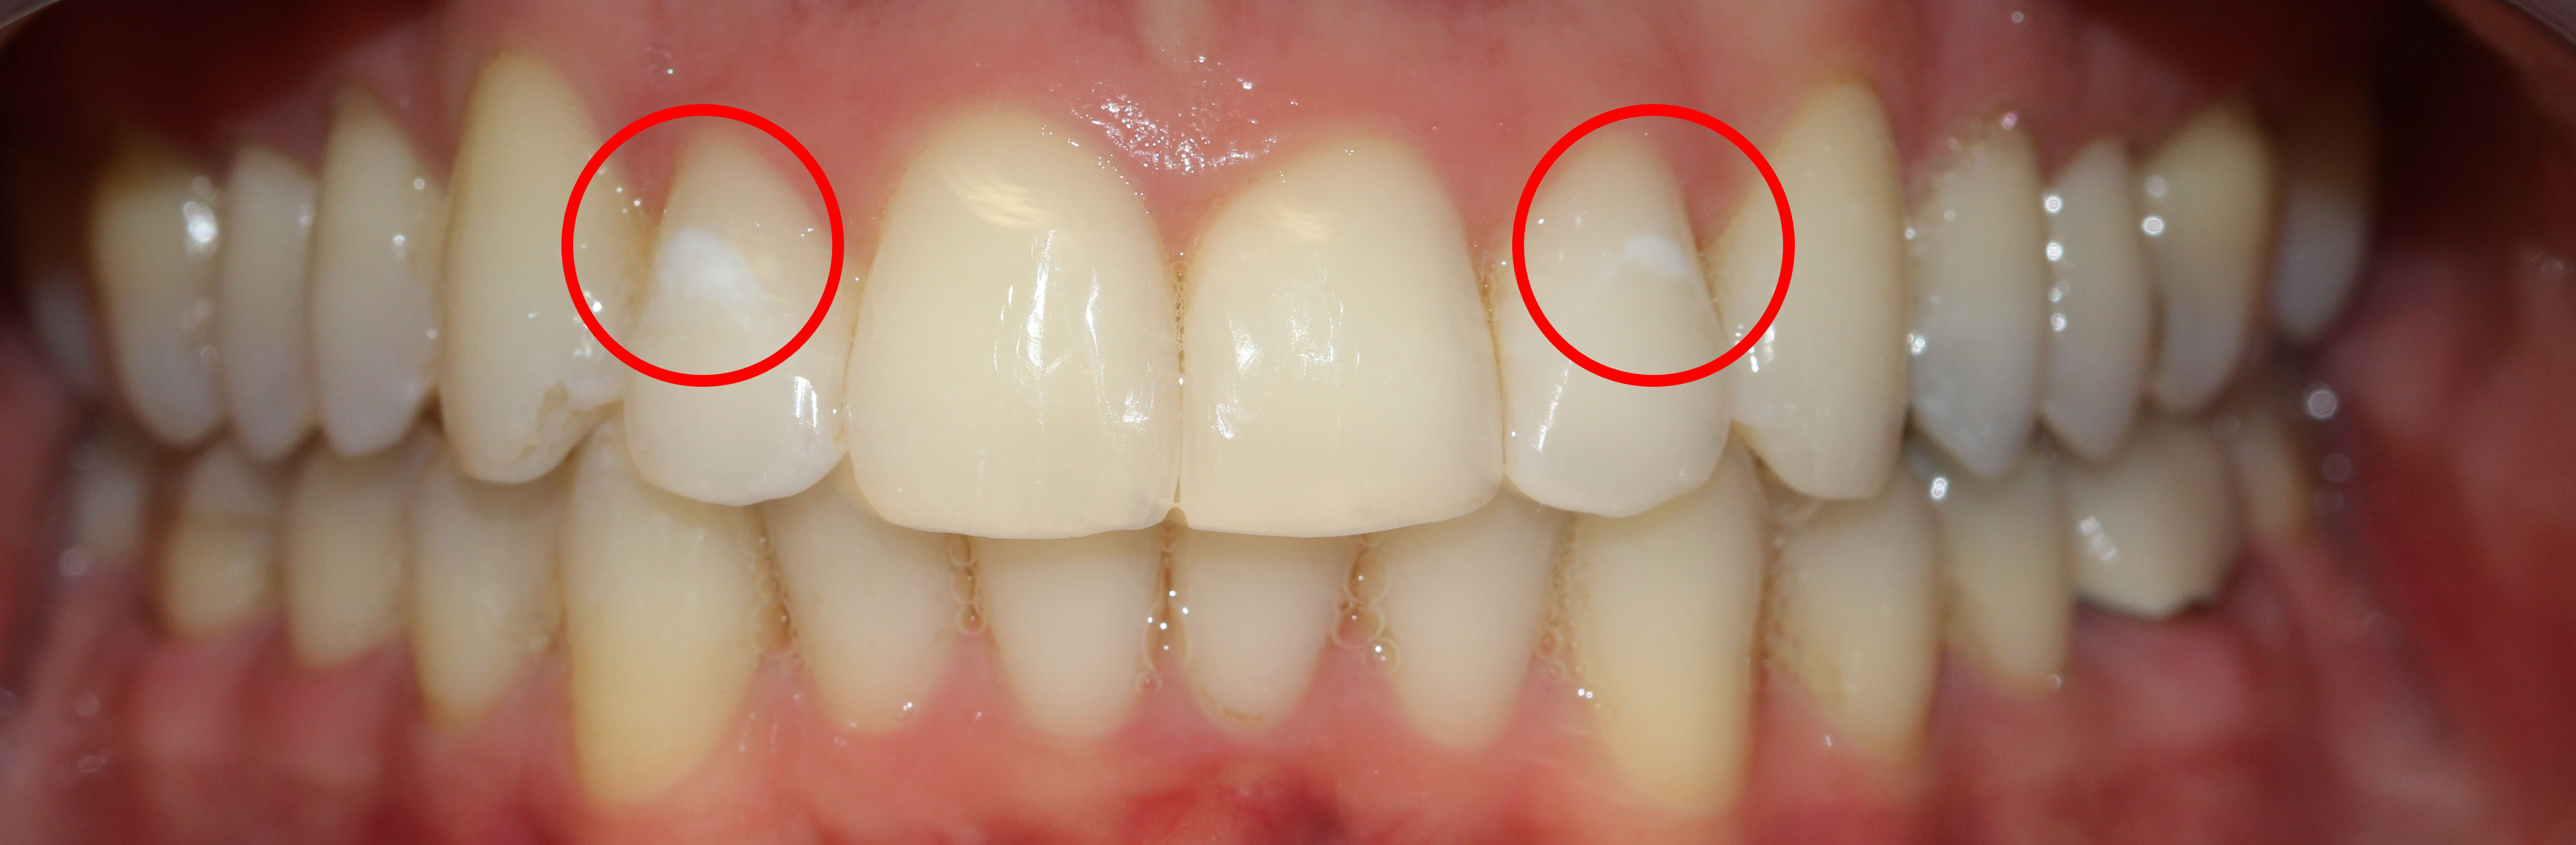 Before: Close up of top and bottom teeth showing demineralization